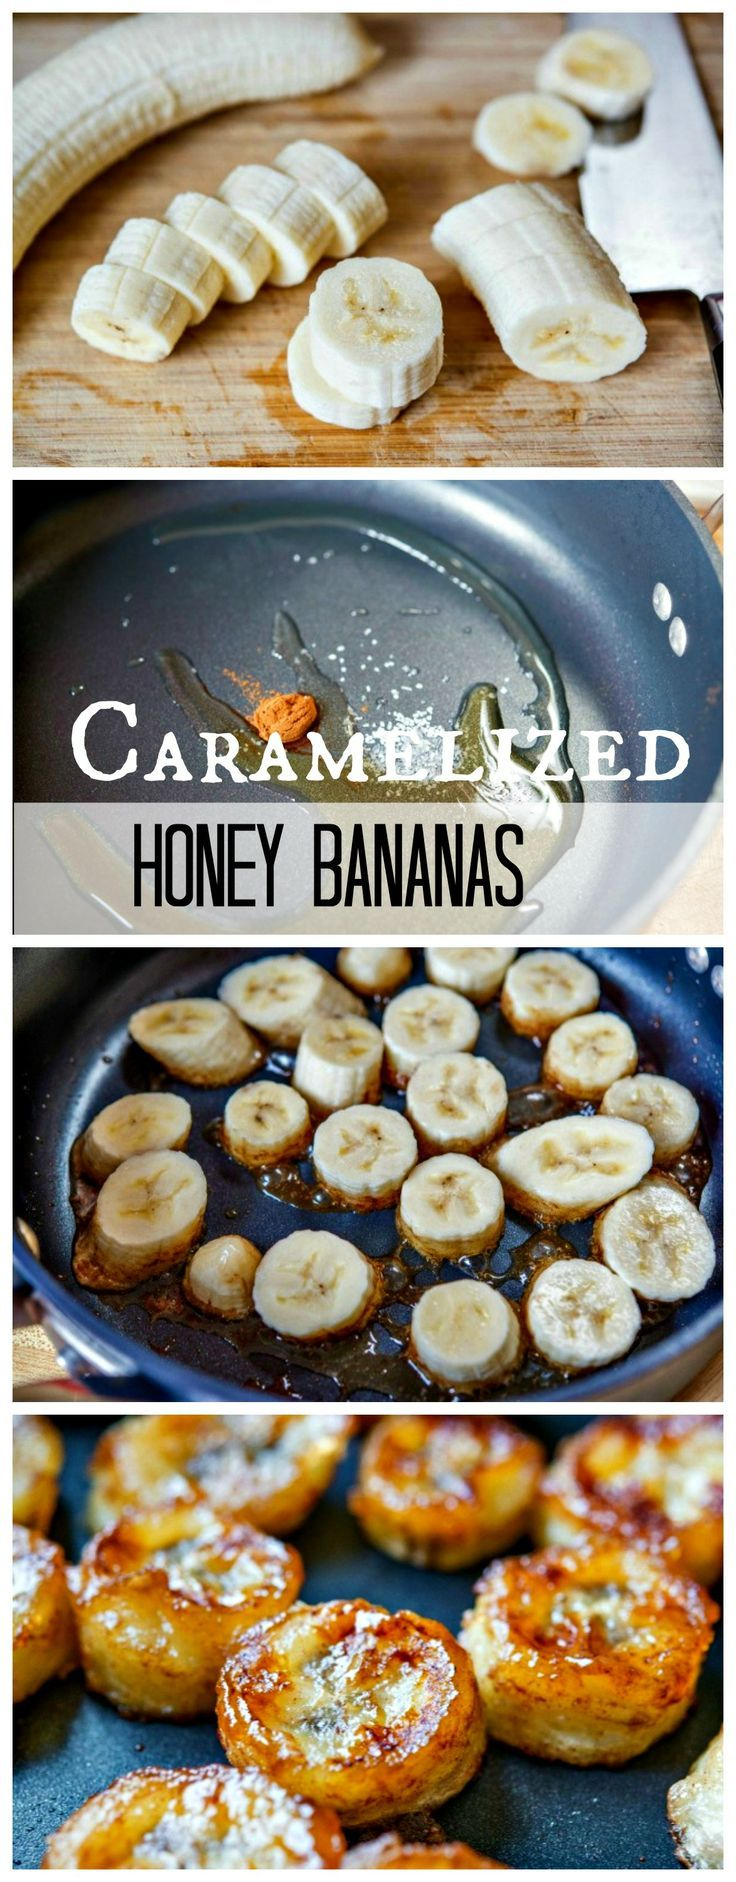 #Caramelized #Honey #Bananas